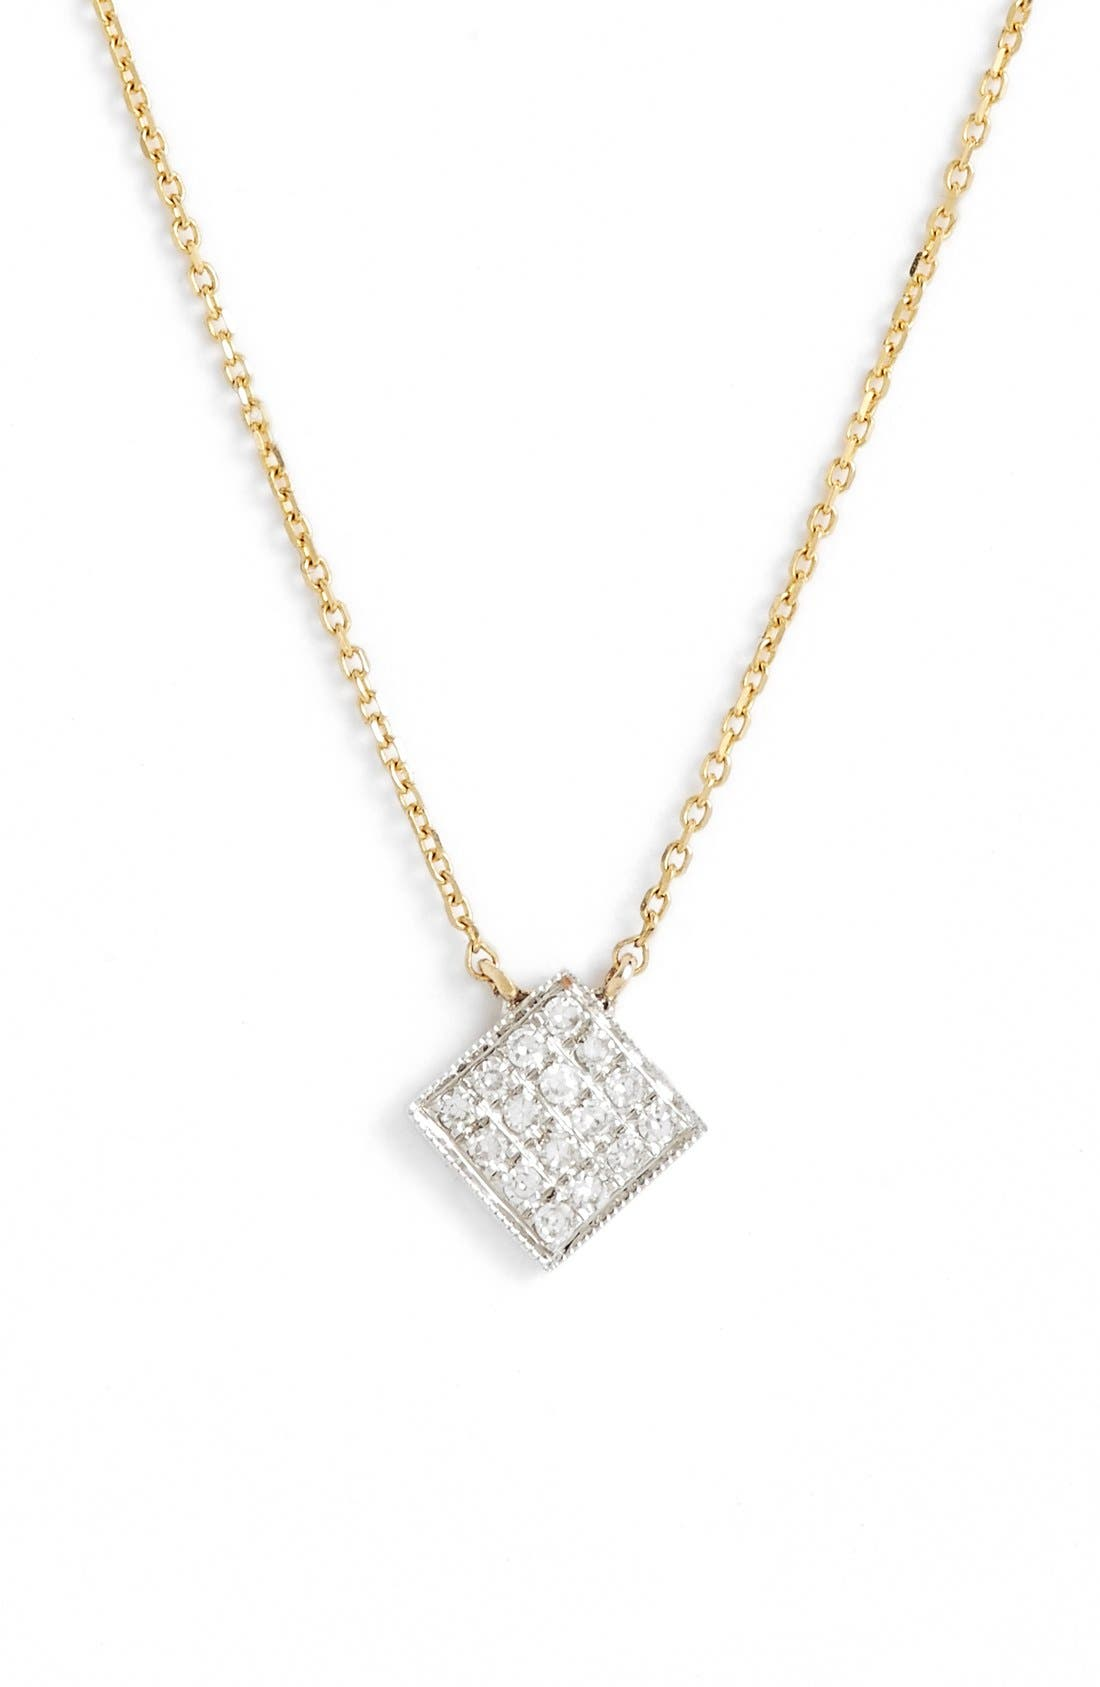 DANA REBECCA DESIGNS Lisa Michelle Diamond Pavé Square Pendant Necklace